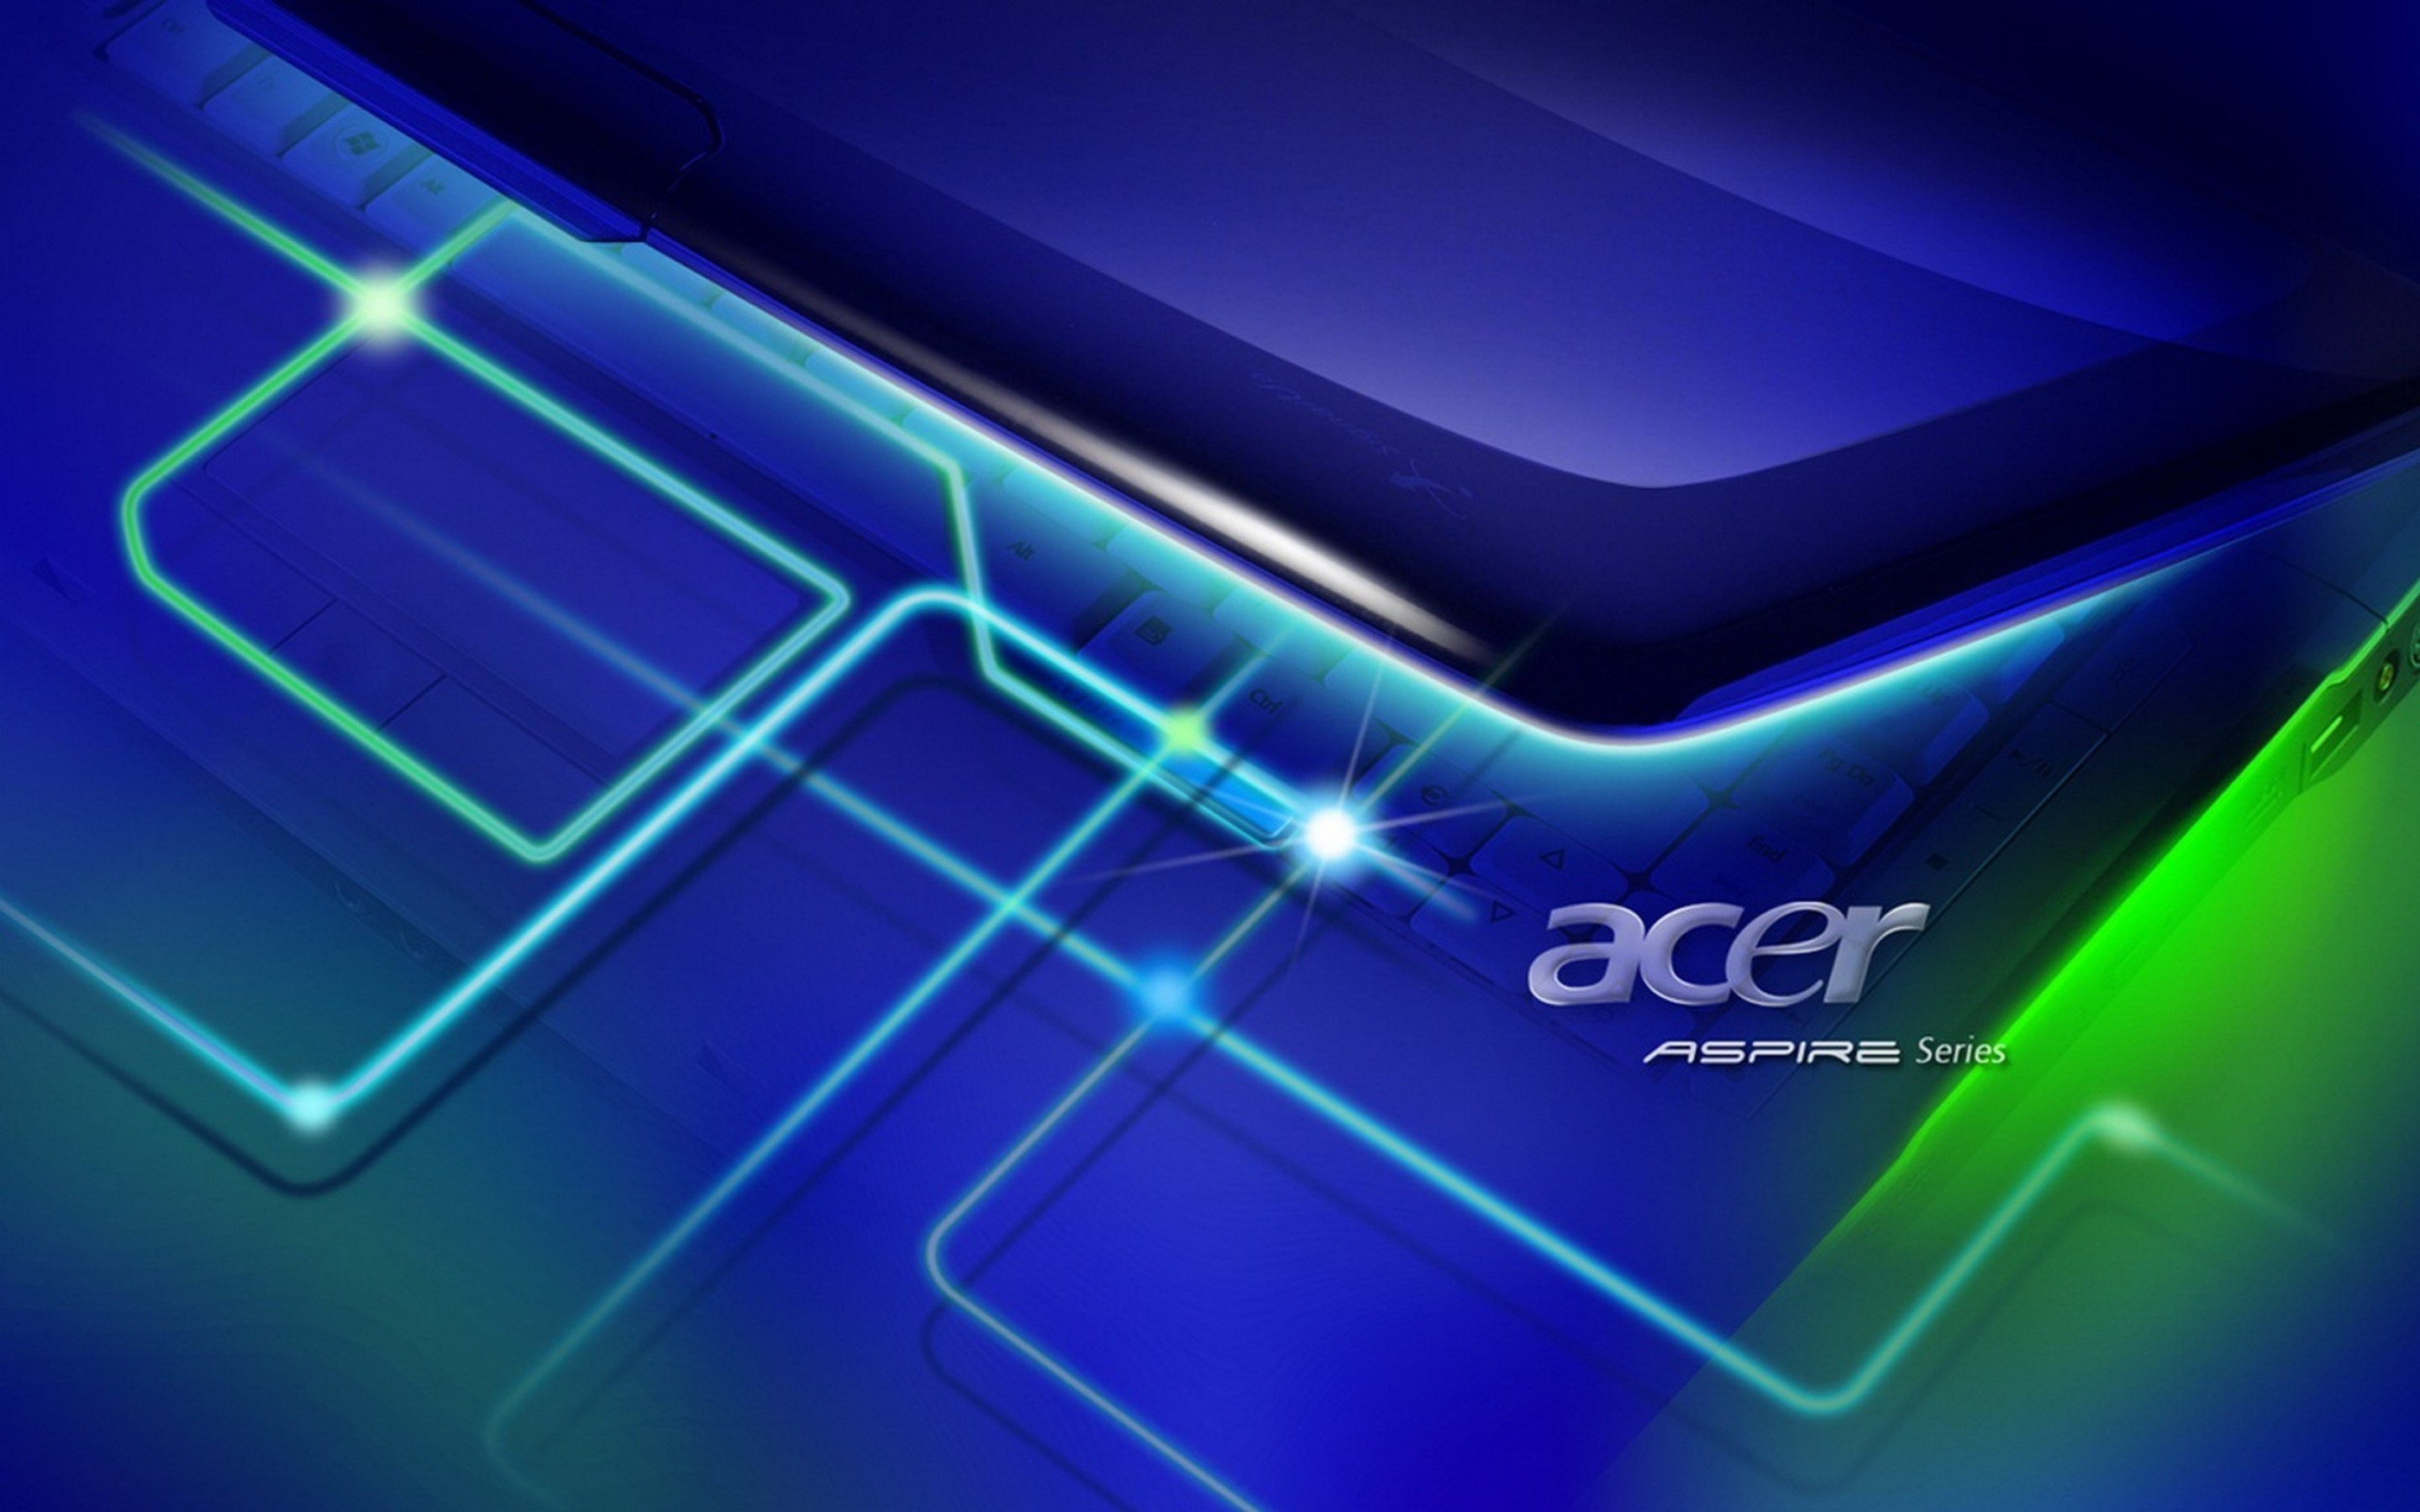 1920x1080 Acer Aspire Net Book 4K Wallpaper